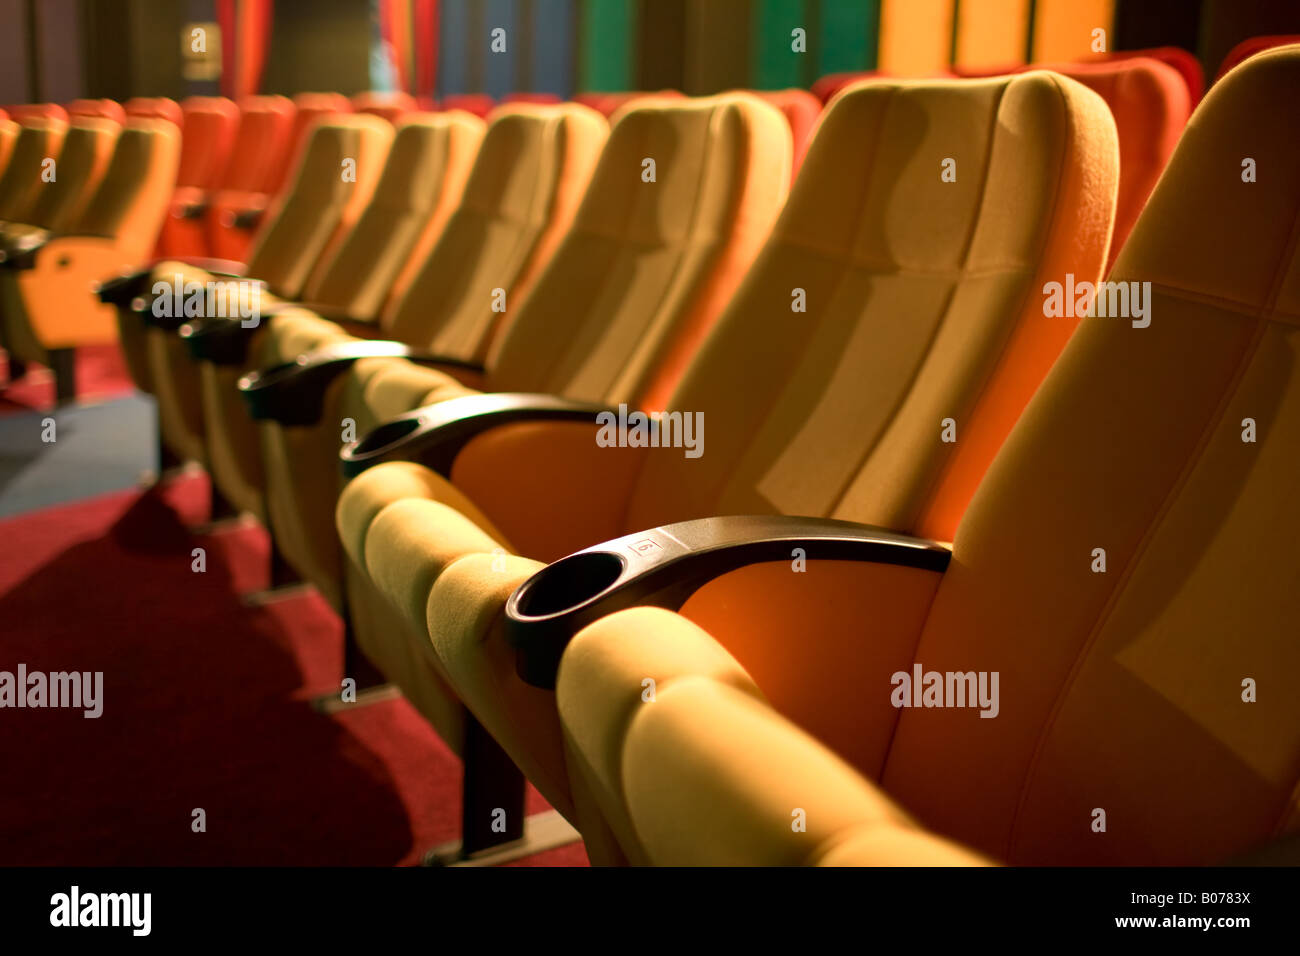 Row of chairs - Stock Image